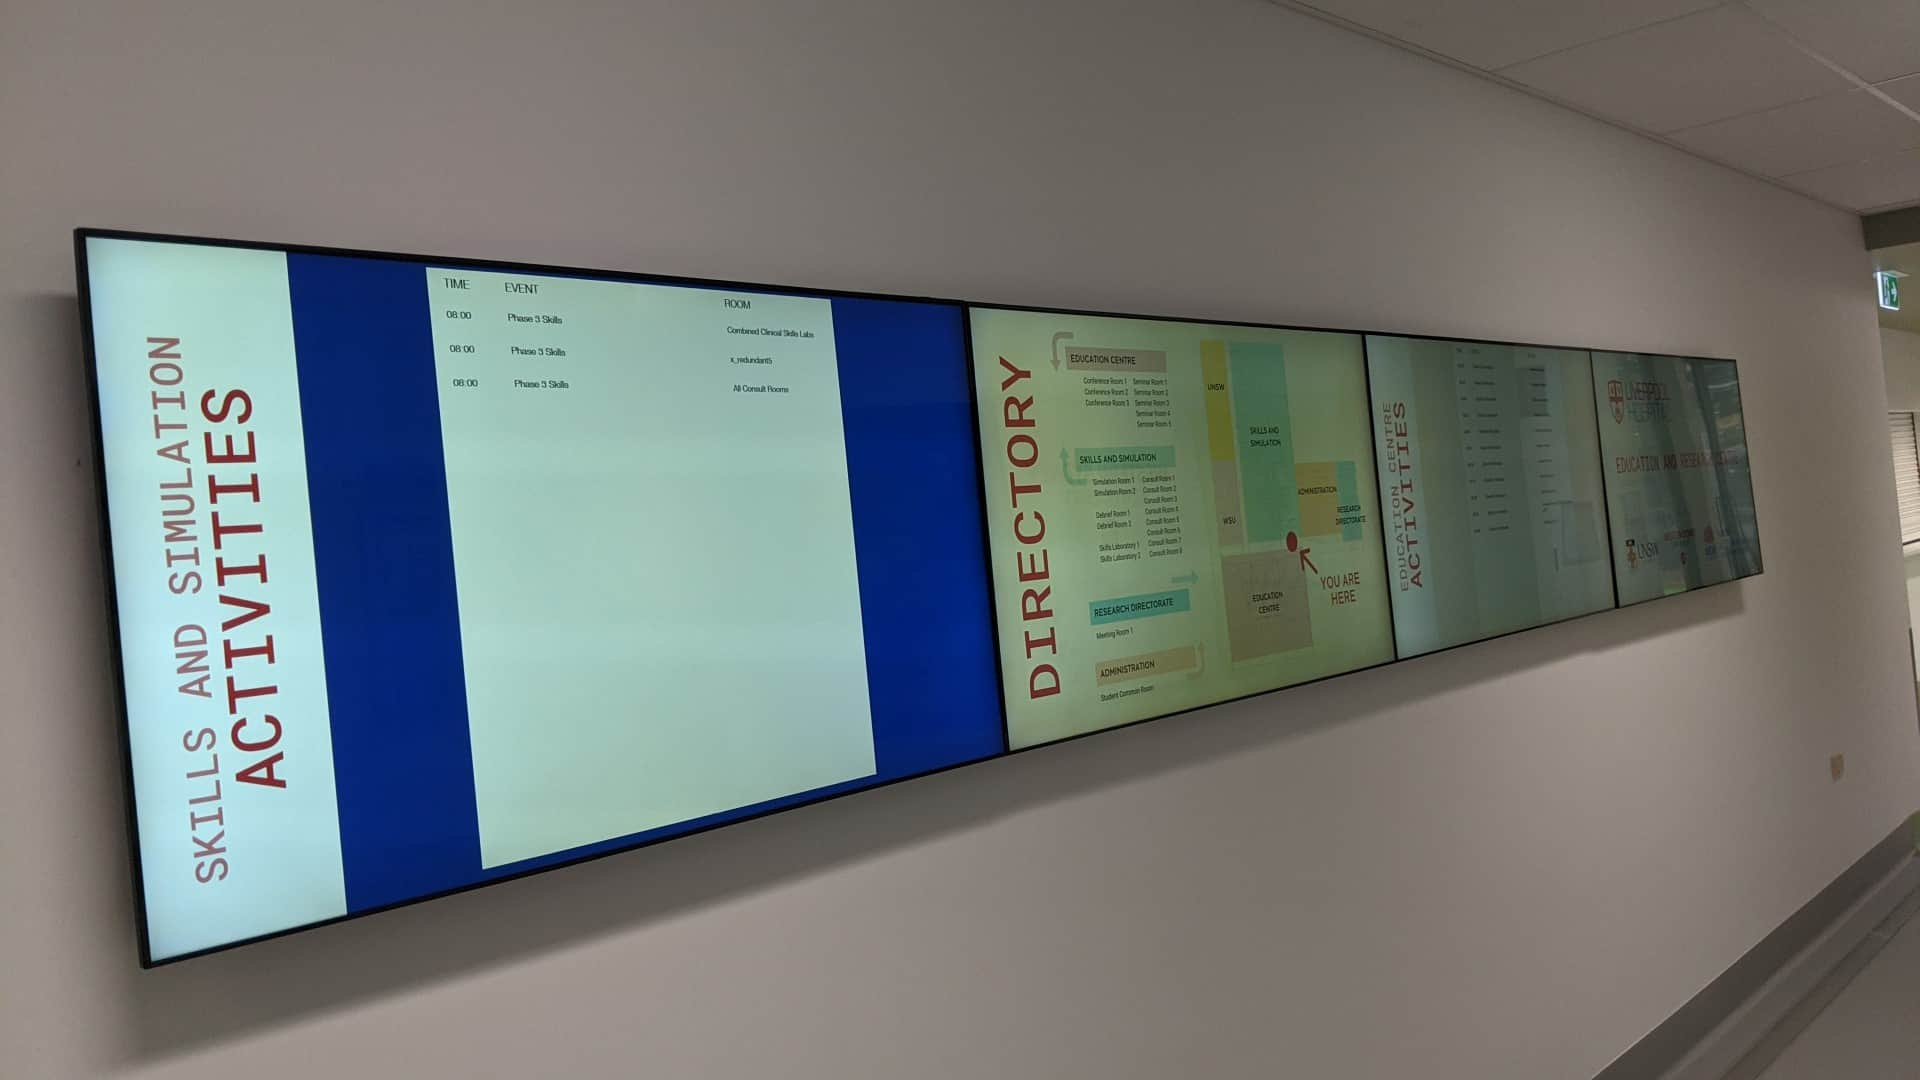 Digital Wayfinding Solutions -LIVERPOOL HOSPITAL EDUCATION AND RESEARCH CONFERENCE ROOMS DIRECTIONAL WAYFINDING Video Wall 2